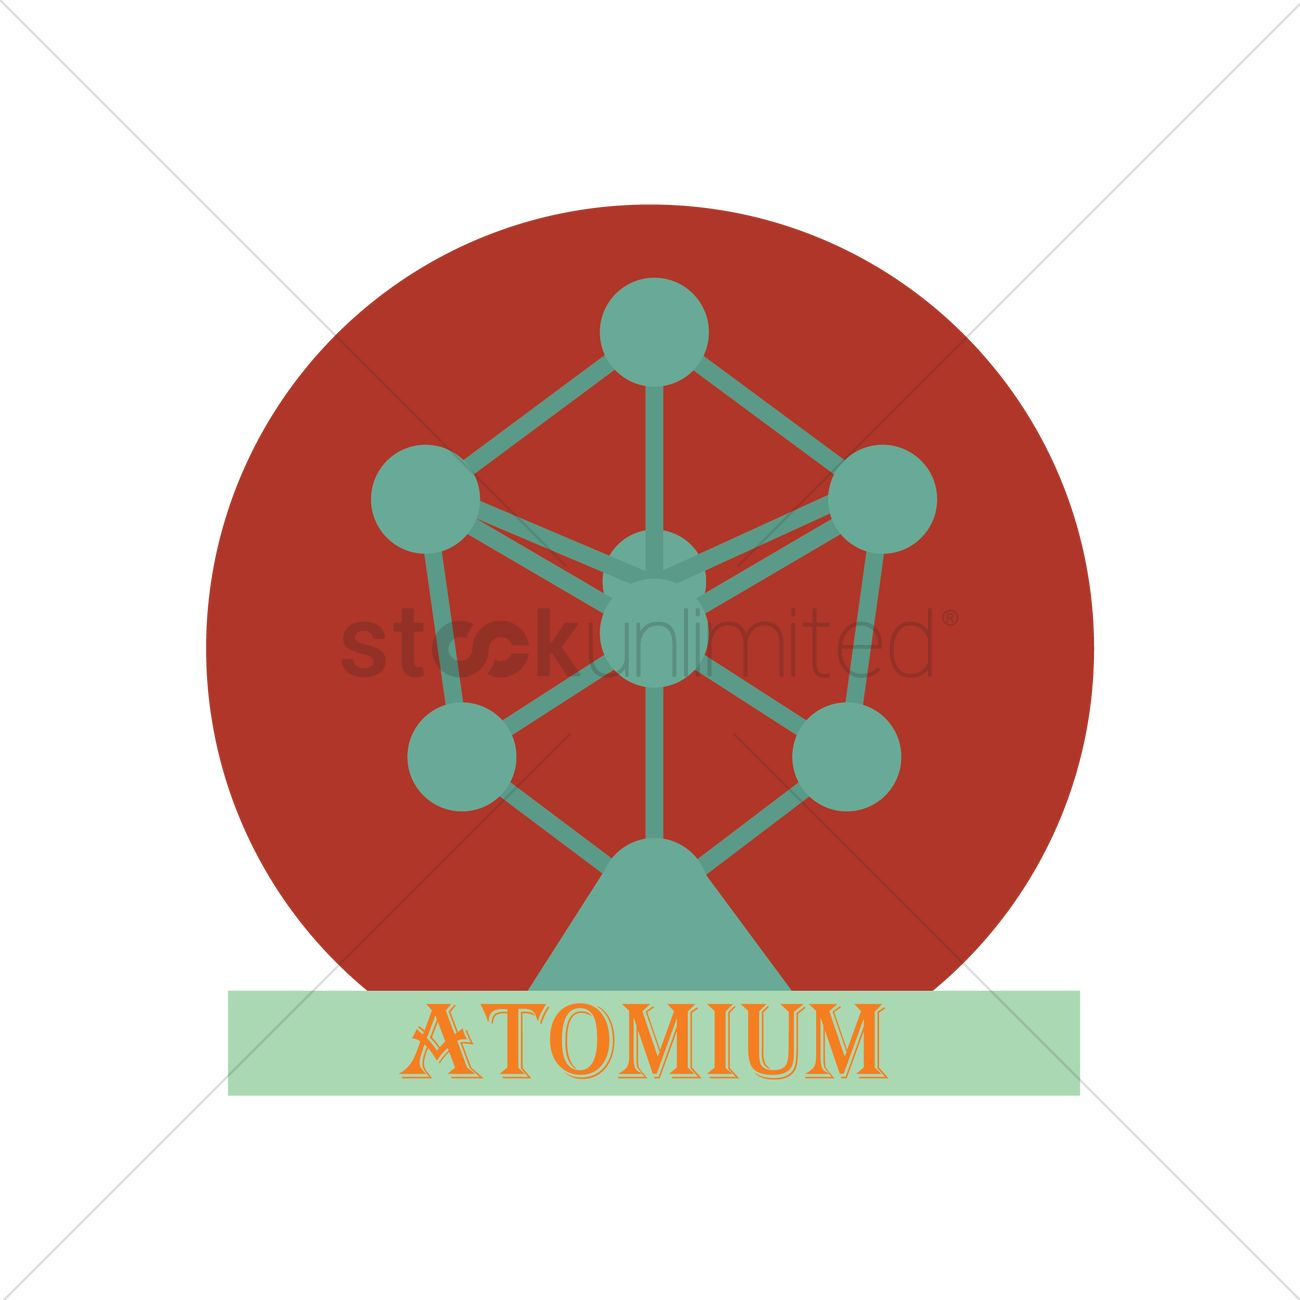 Atomium of brussels Vector Image.